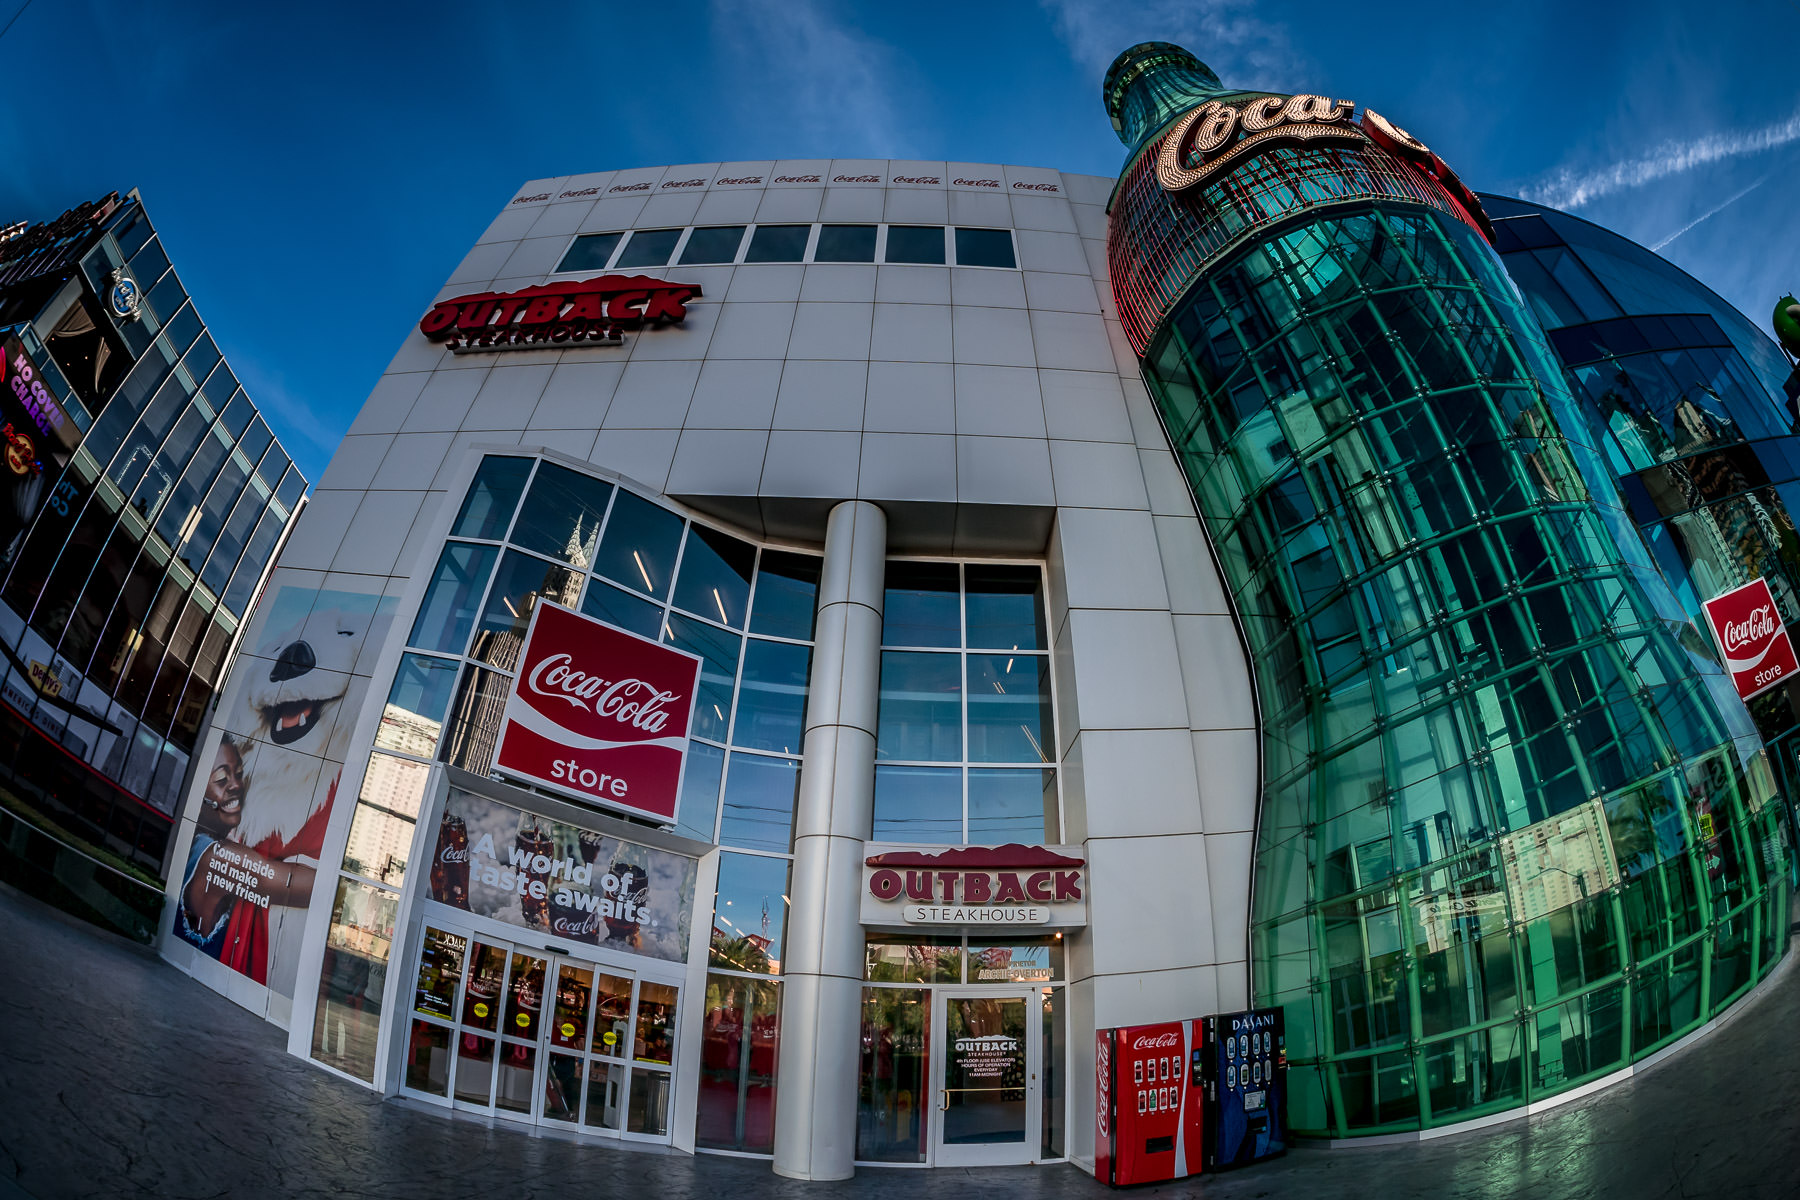 The Coca-Cola Store and Outback Steakhouse on the Las Vegas Strip.